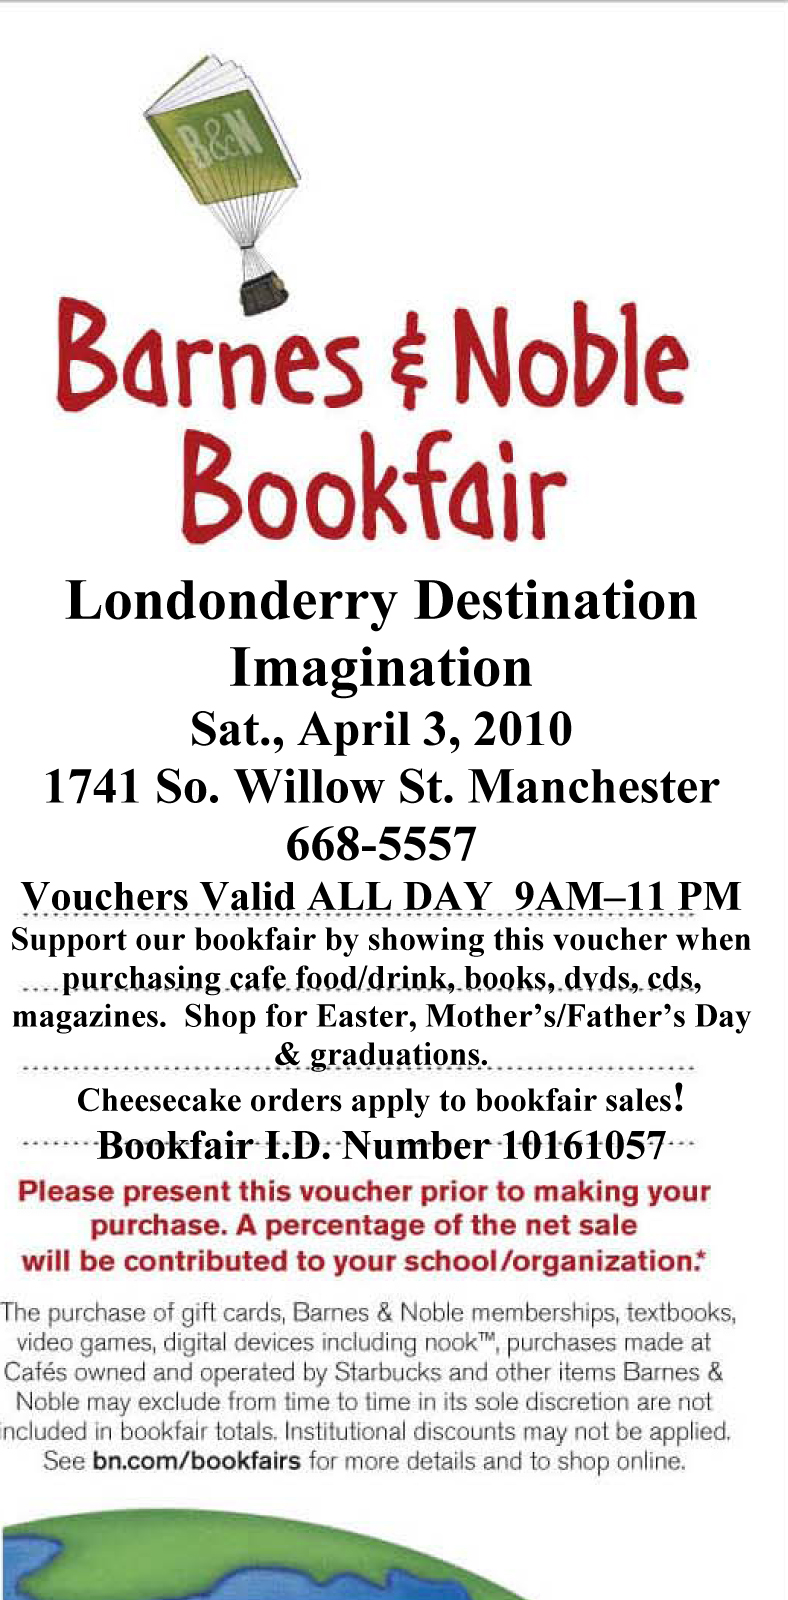 DI Bookfair at Barnes & Noble – Londonderry News